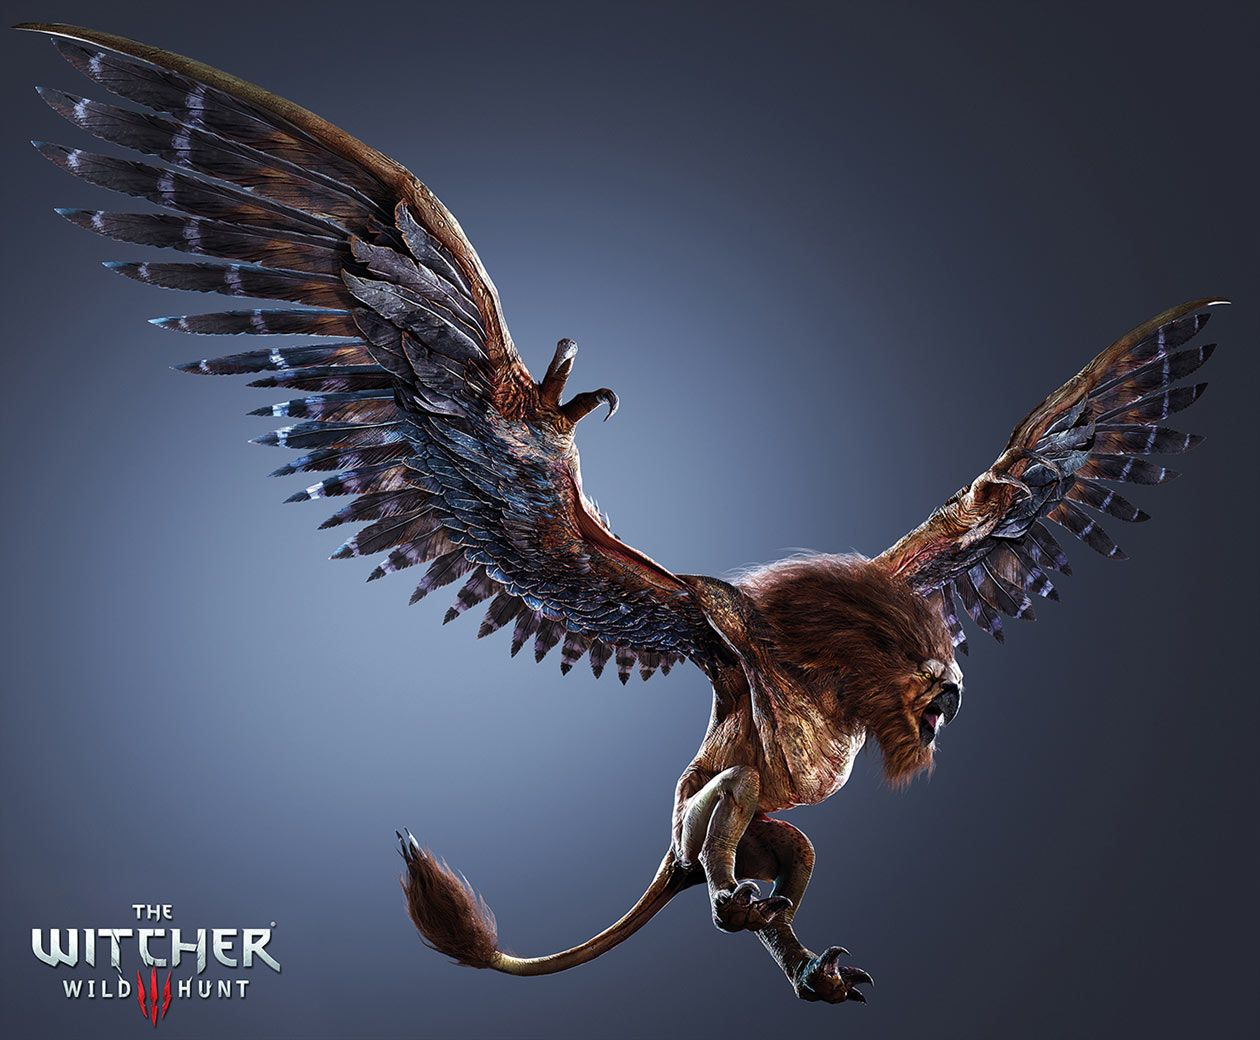 The Witcher 3 5 Jpg 1260 1040 Witcher Art Fantasy Creatures Art The Witcher 3